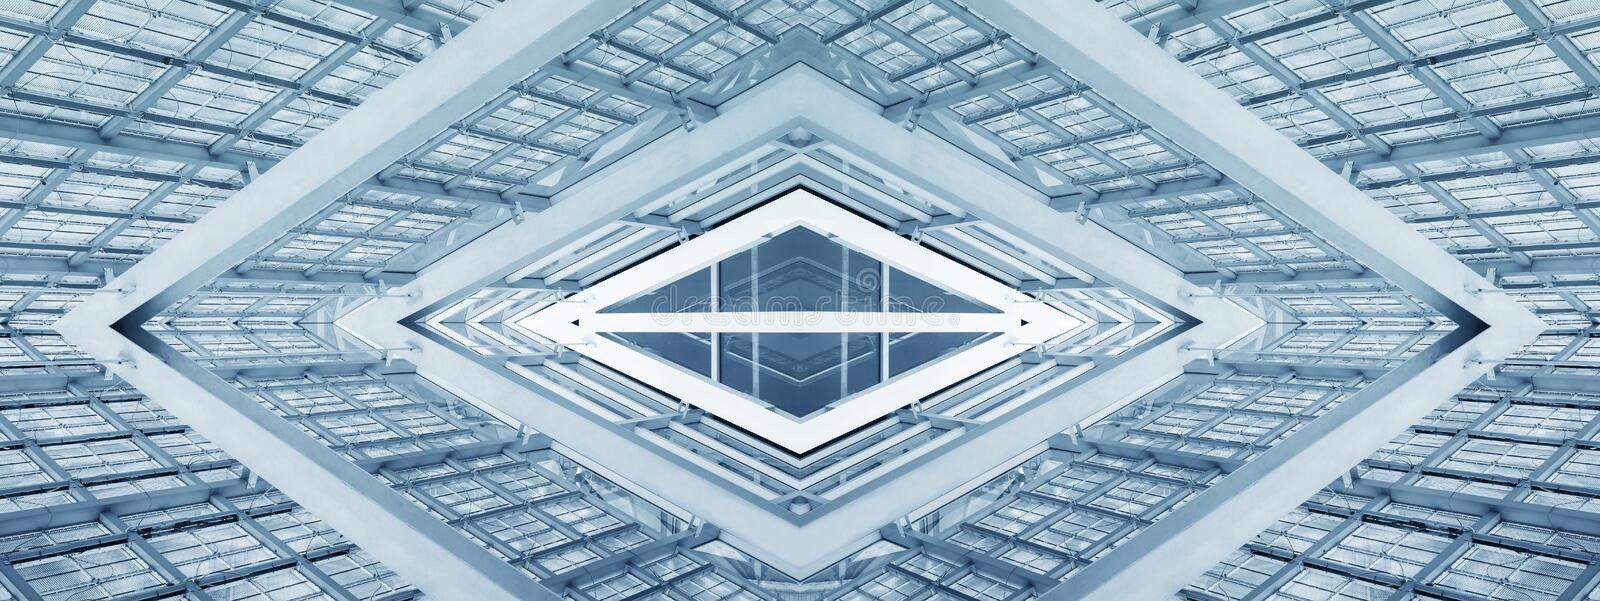 Abstract Architecture Modern Building mirror reflection futuristic Background royalty free stock photo